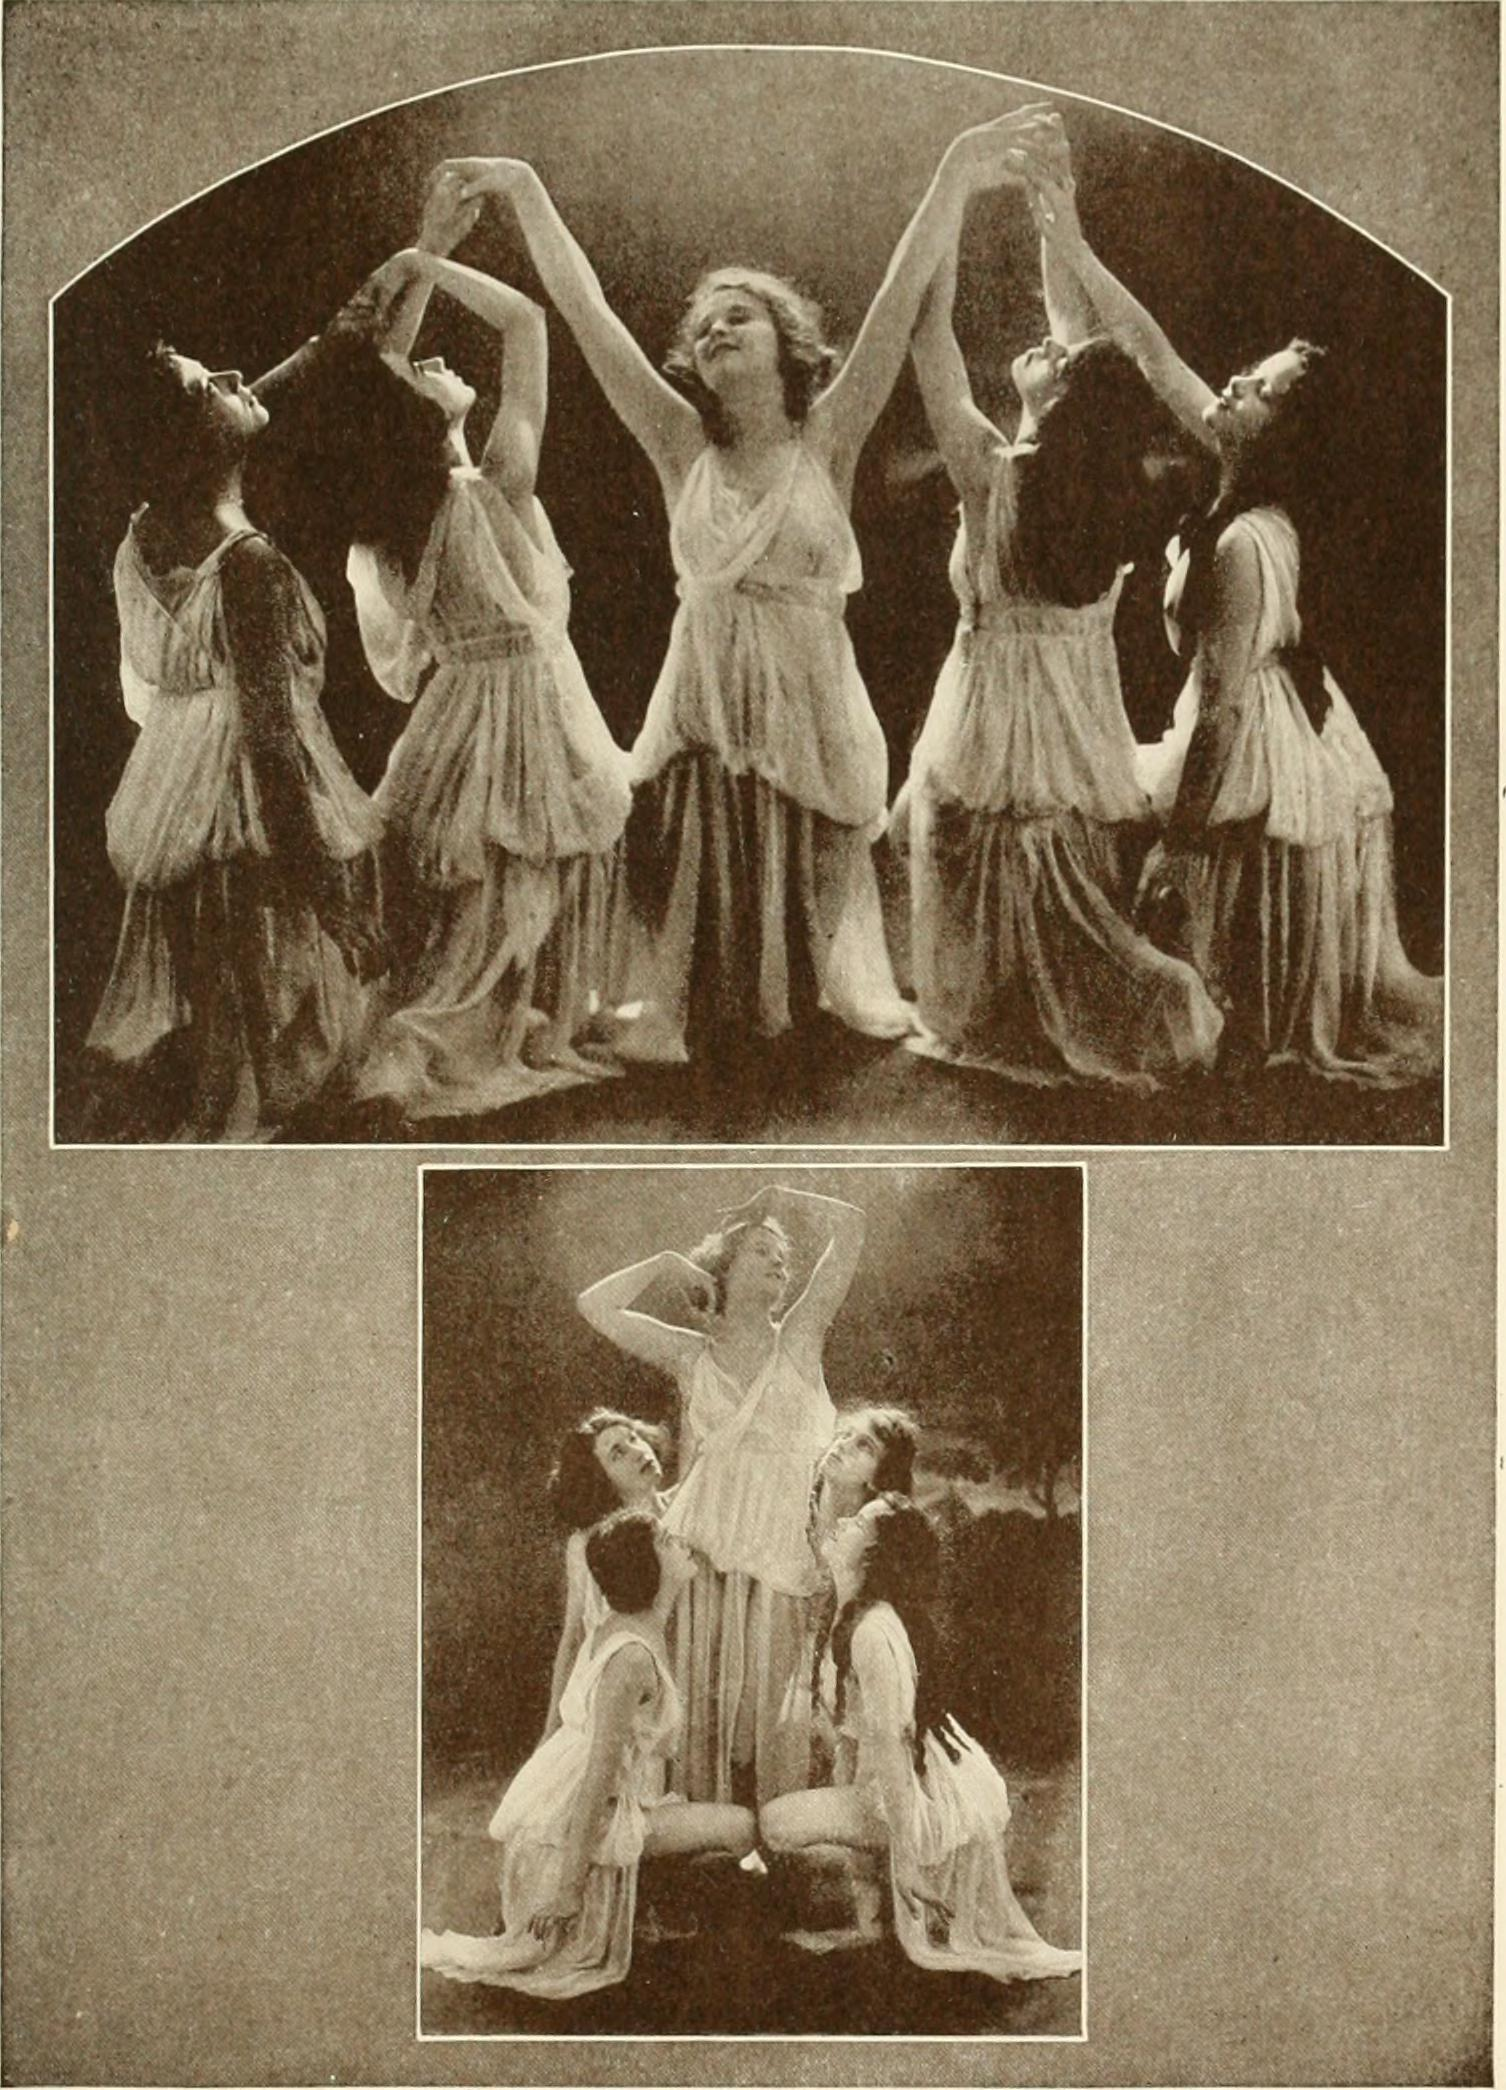 From the book Dancing with Helen Moller 1918